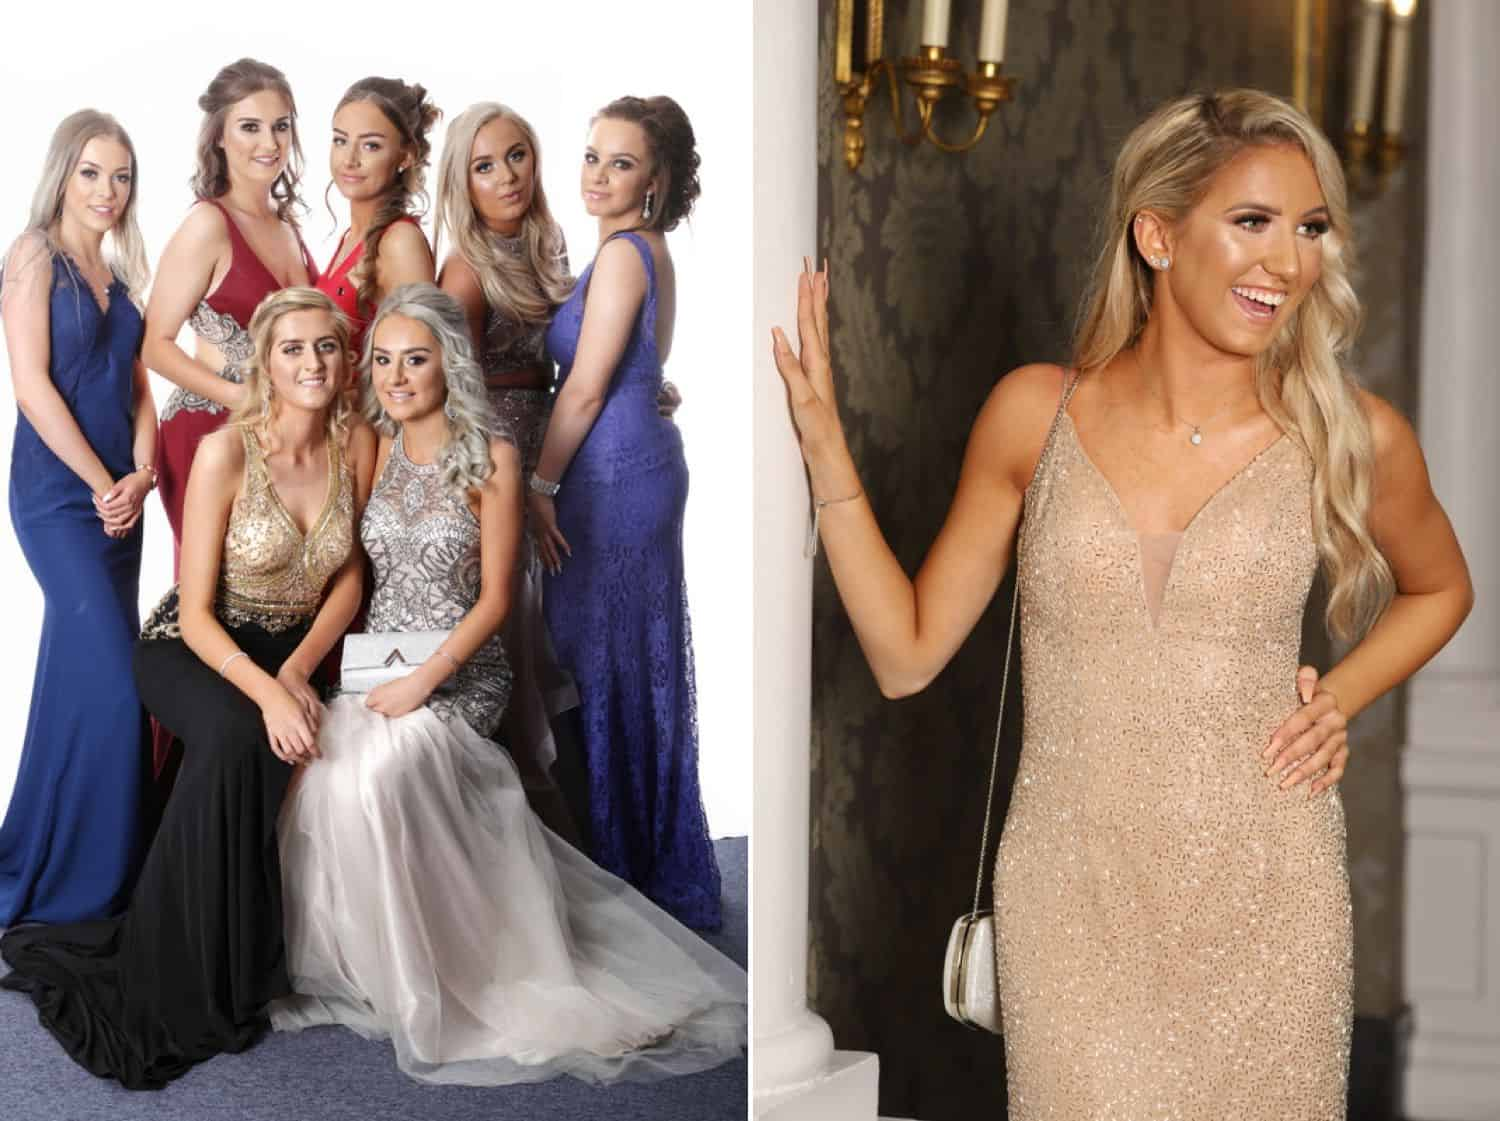 High school senior girls pose in their formal gowns for prom photography